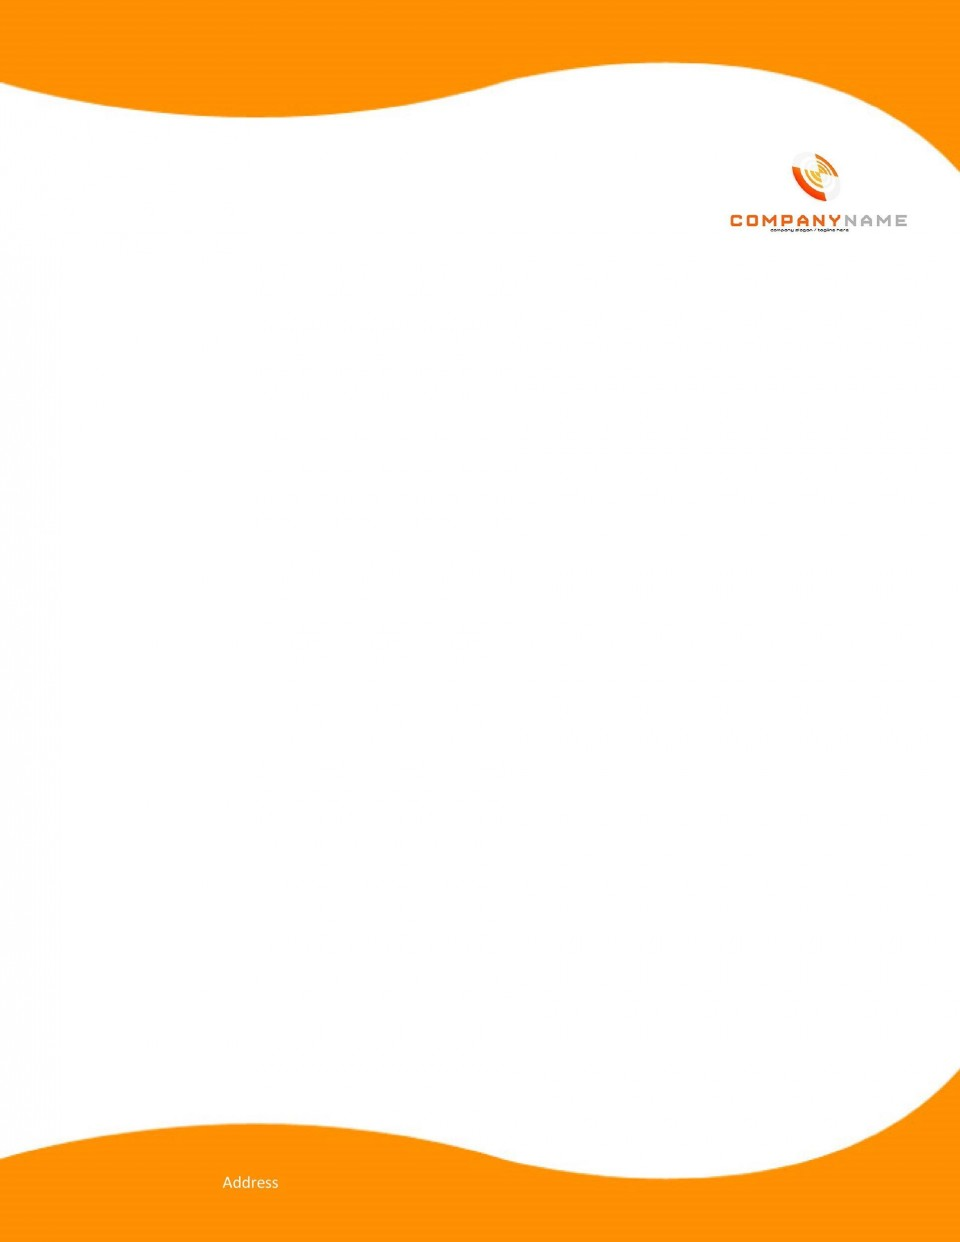 007 Stupendou Letterhead Template Free Download Word Concept  Microsoft Format In Personal Red960